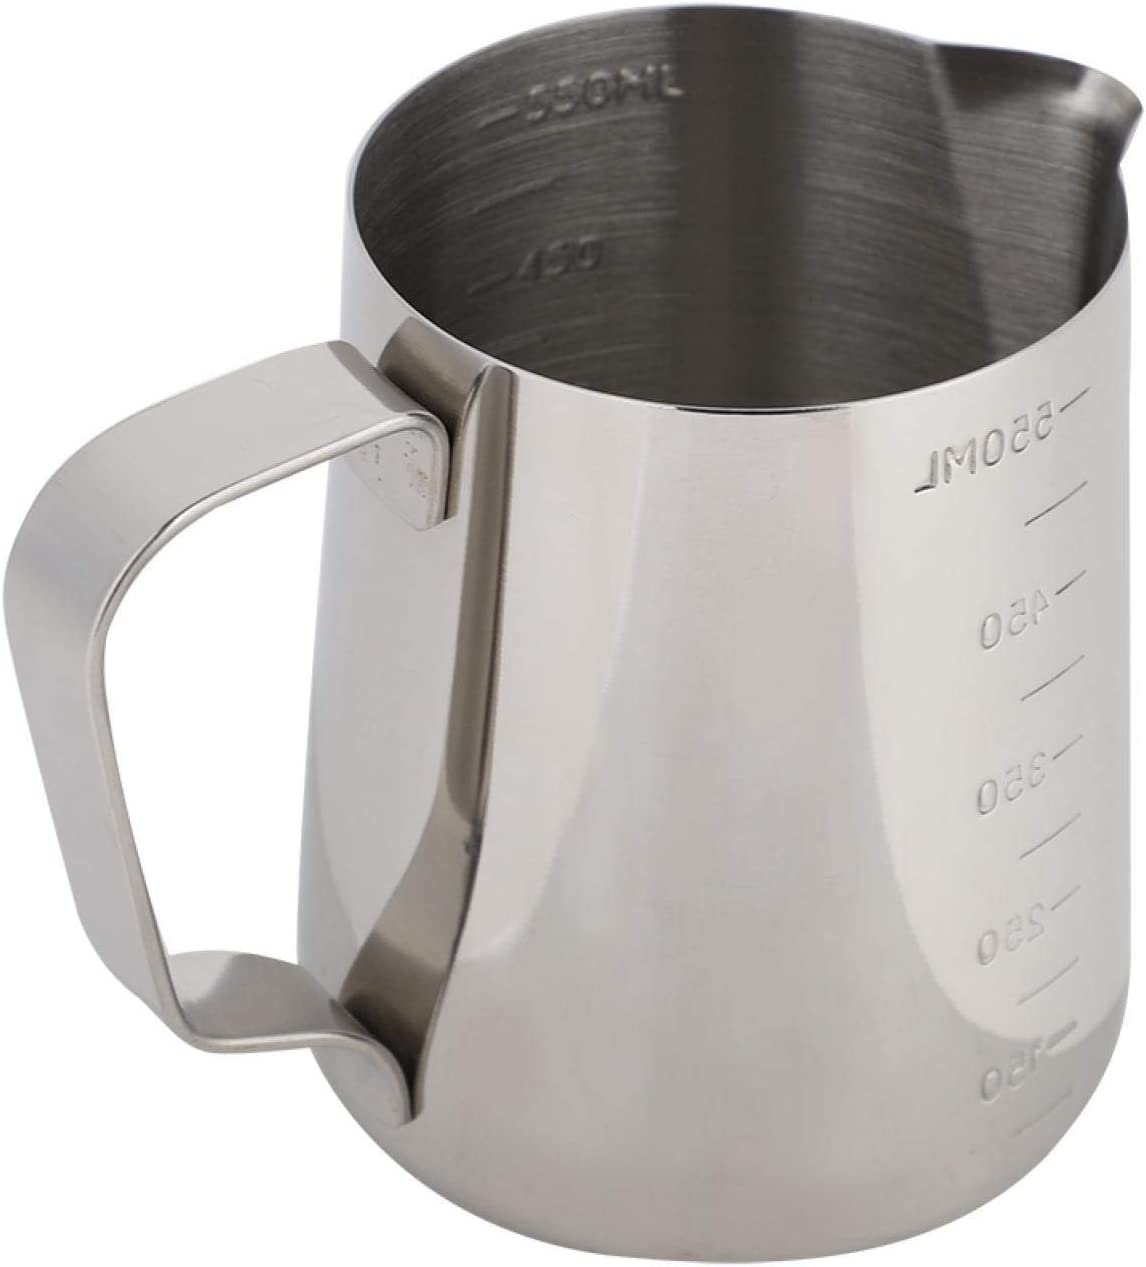 Ranking TOP5 Coffee Jug with Scales Frothing Measuri gift Stainless Steel Pitcher